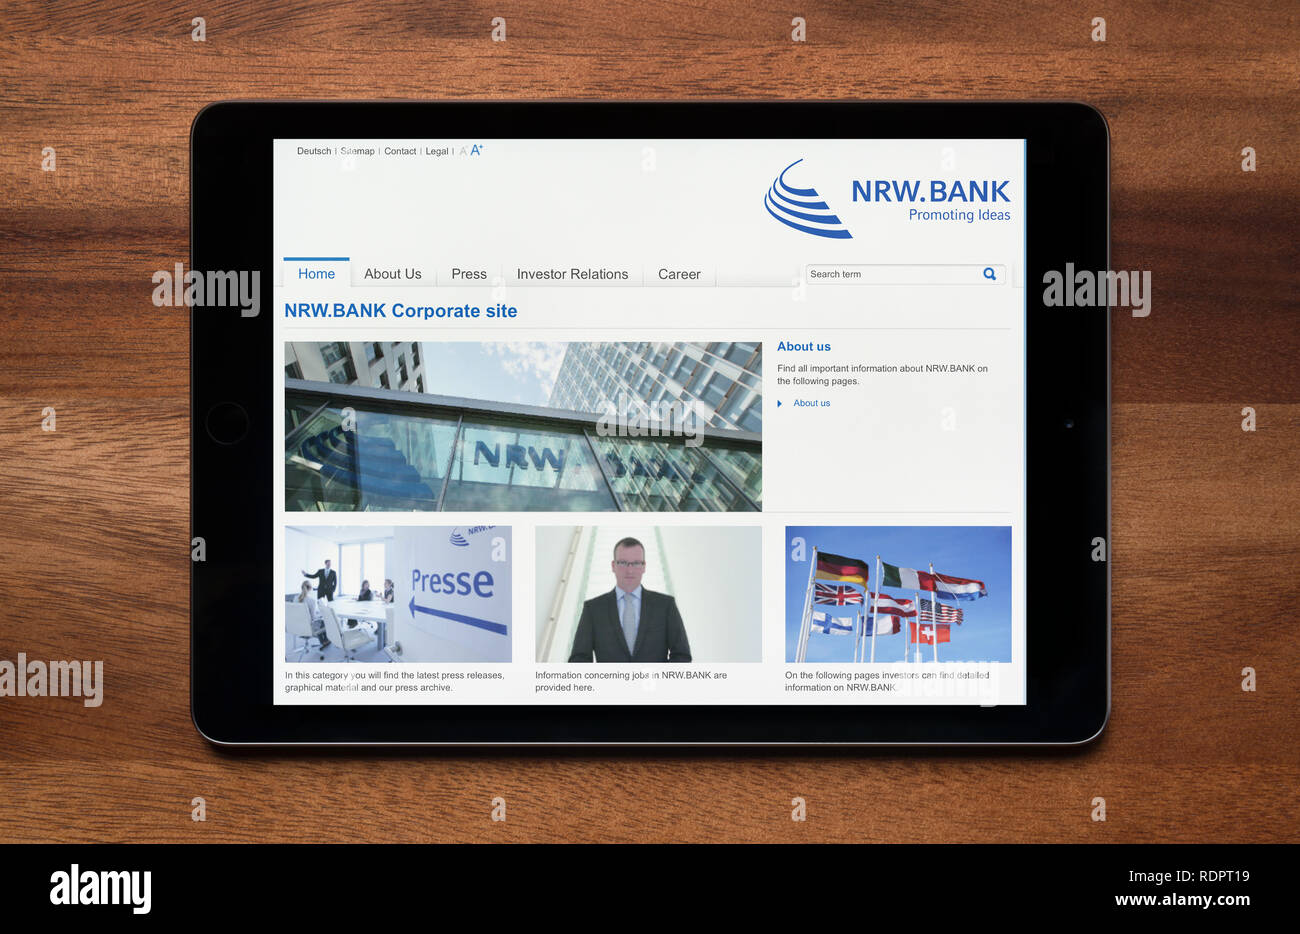 The website of NRW Bank is seen on an iPad tablet, which is resting on a wooden table (Editorial use only). - Stock Image